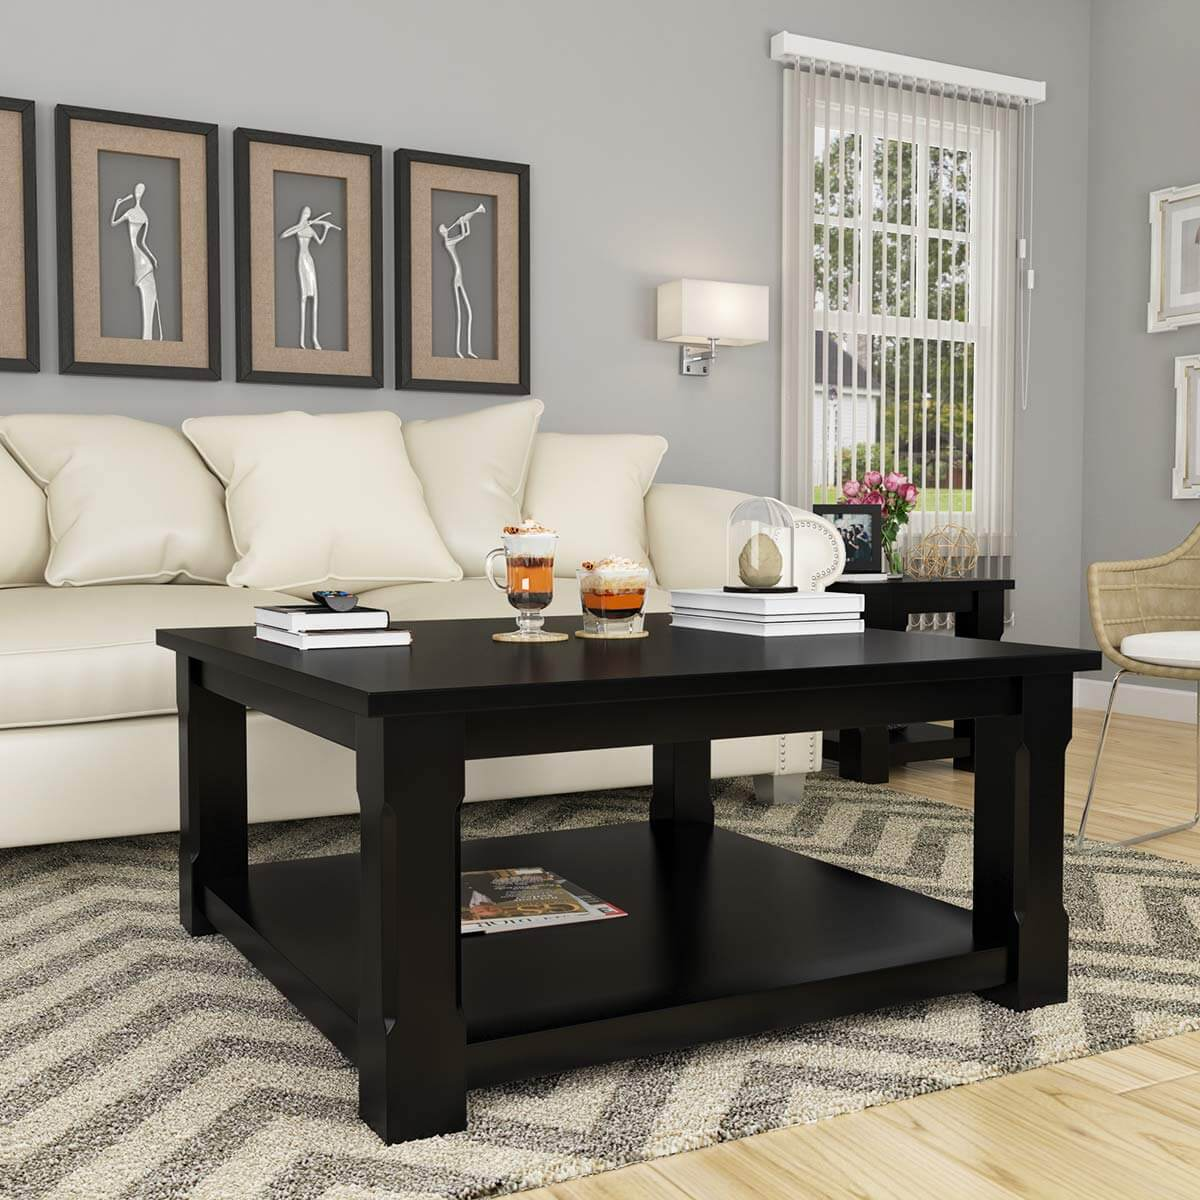 brimson contemporary style solid wood 2 tier square coffee table